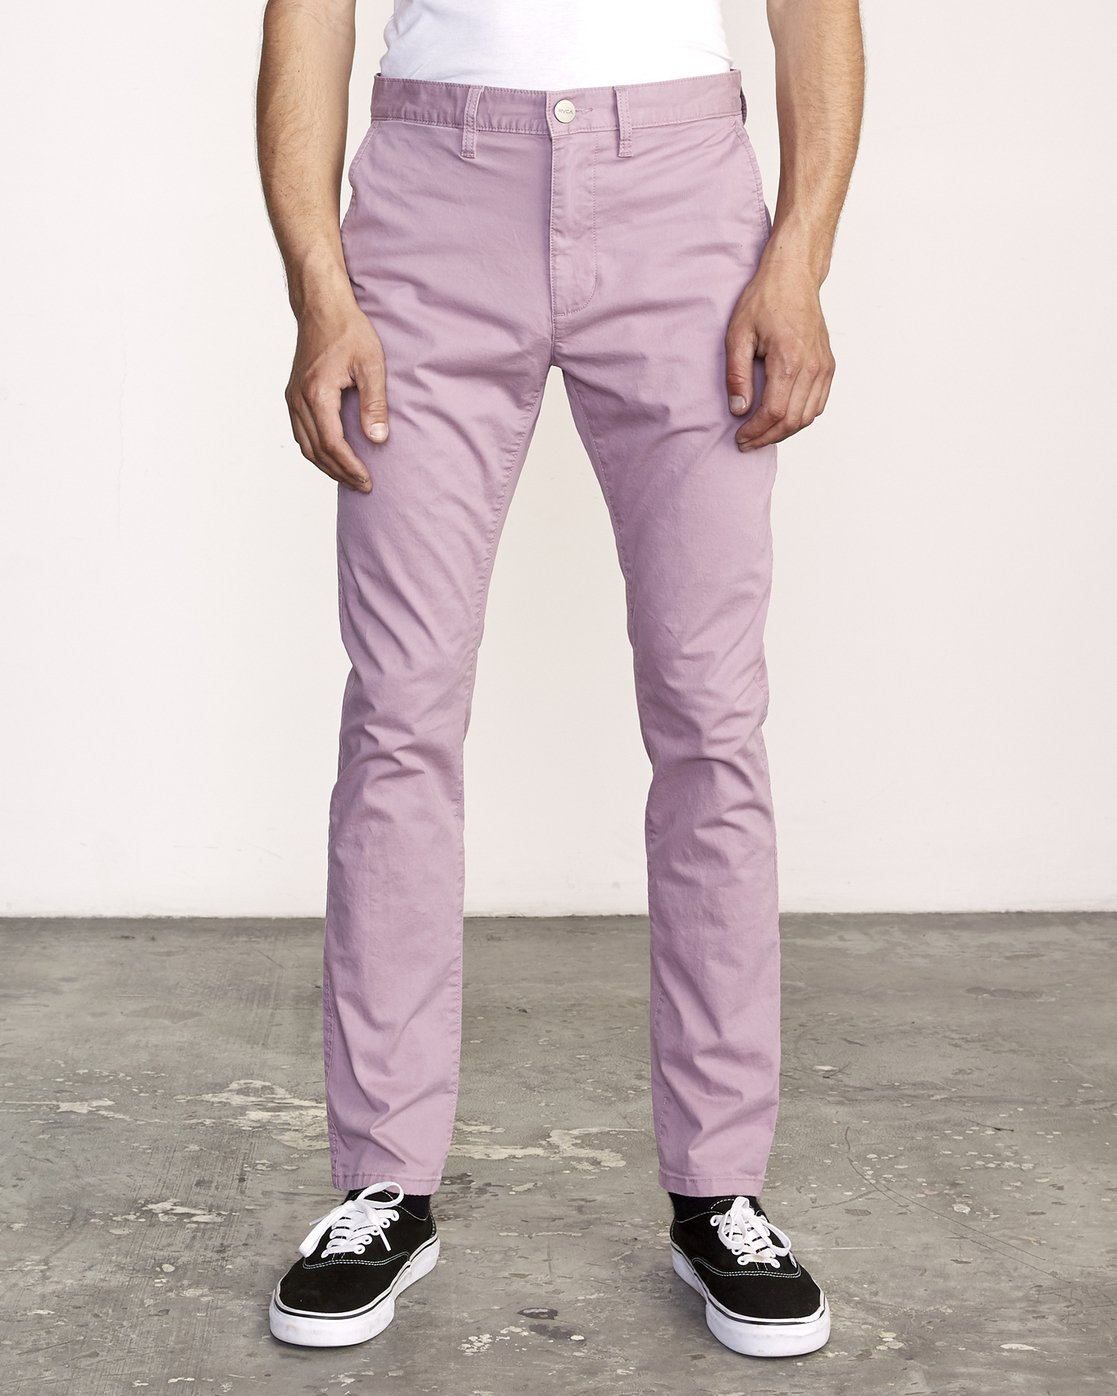 0 DAGGERS SLIM-STRAIGHT CHINO PANTS  M309QRDC RVCA